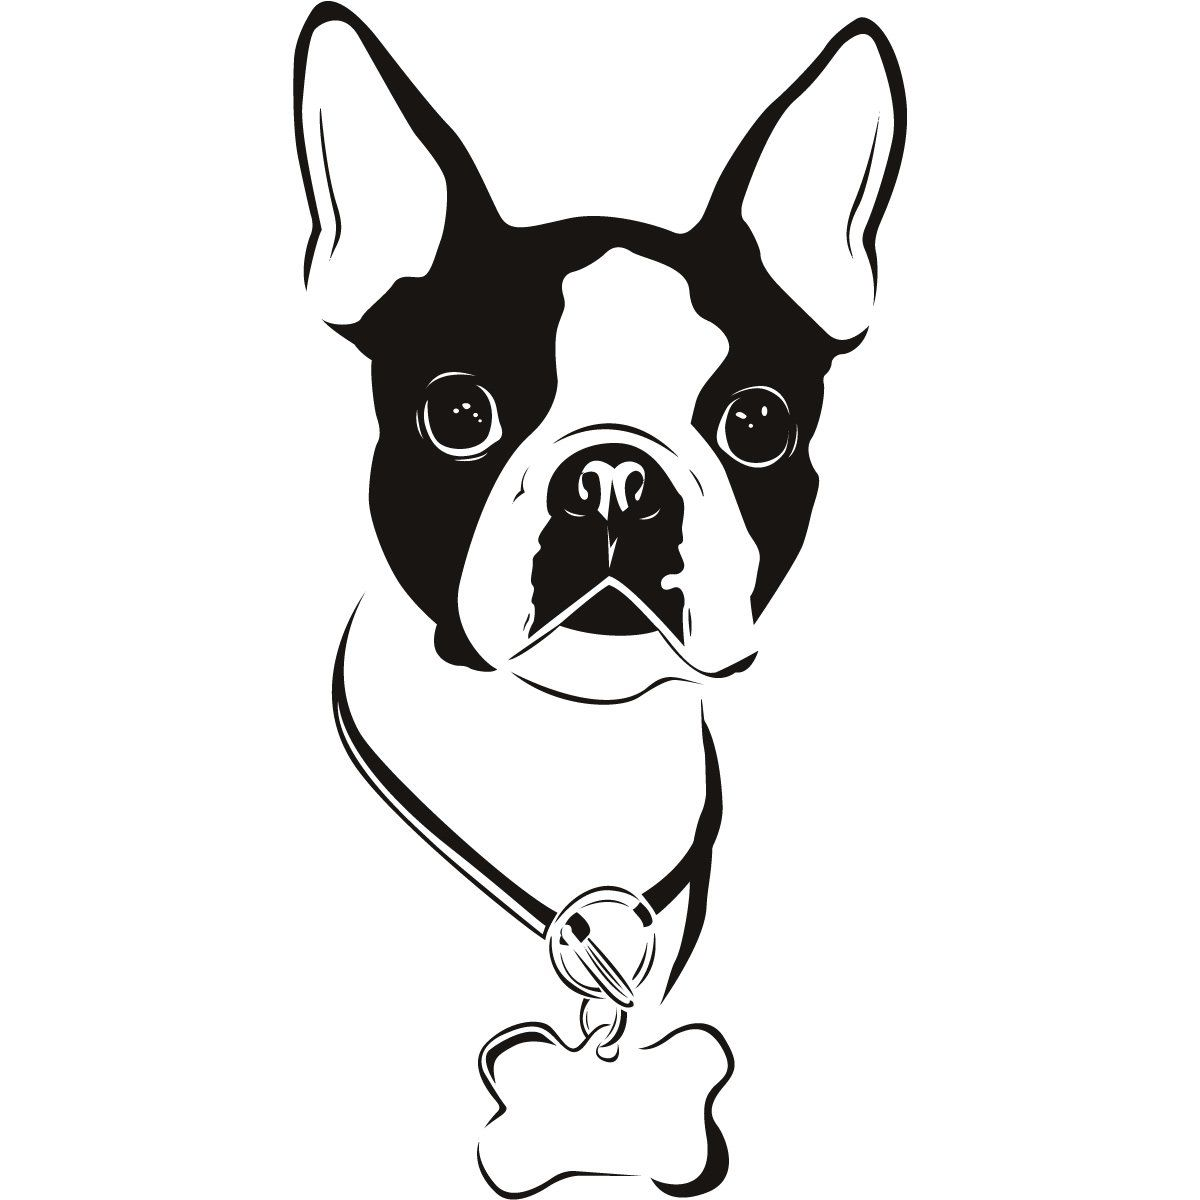 Terrier silhouette clipart transparent library Image result for boston terrier silhouette | A Dog\'s Life ... transparent library